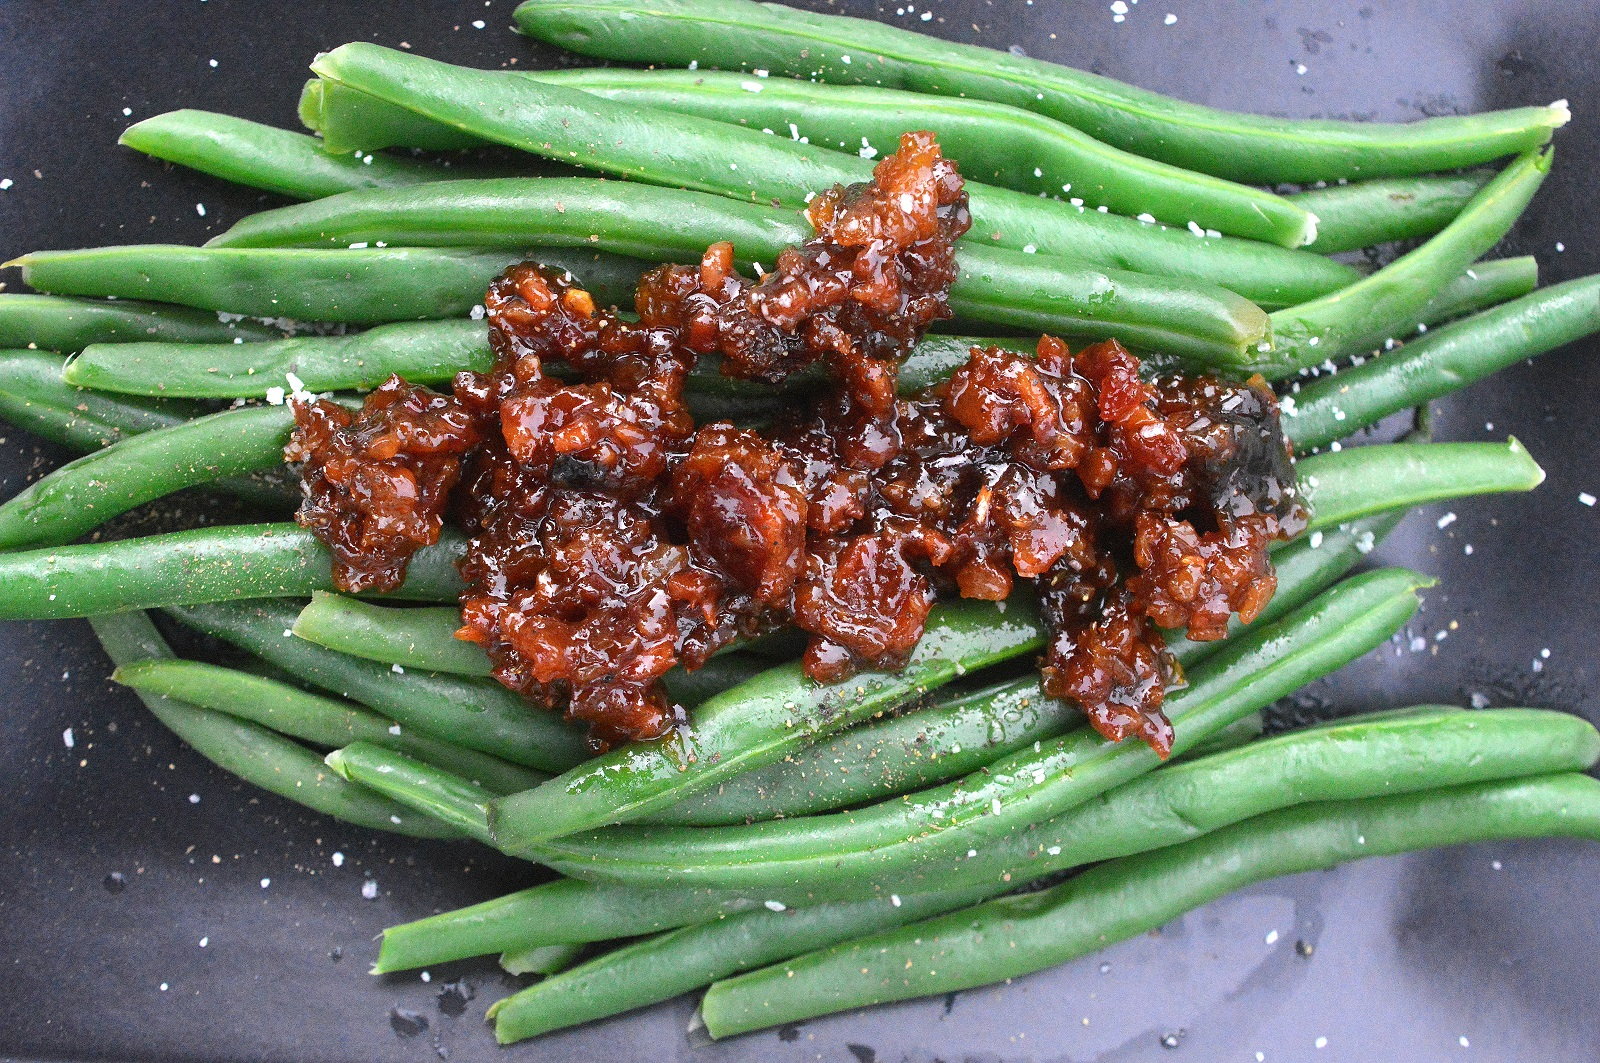 Steamed Green Beans with Bacon Jam are OMG delicious!